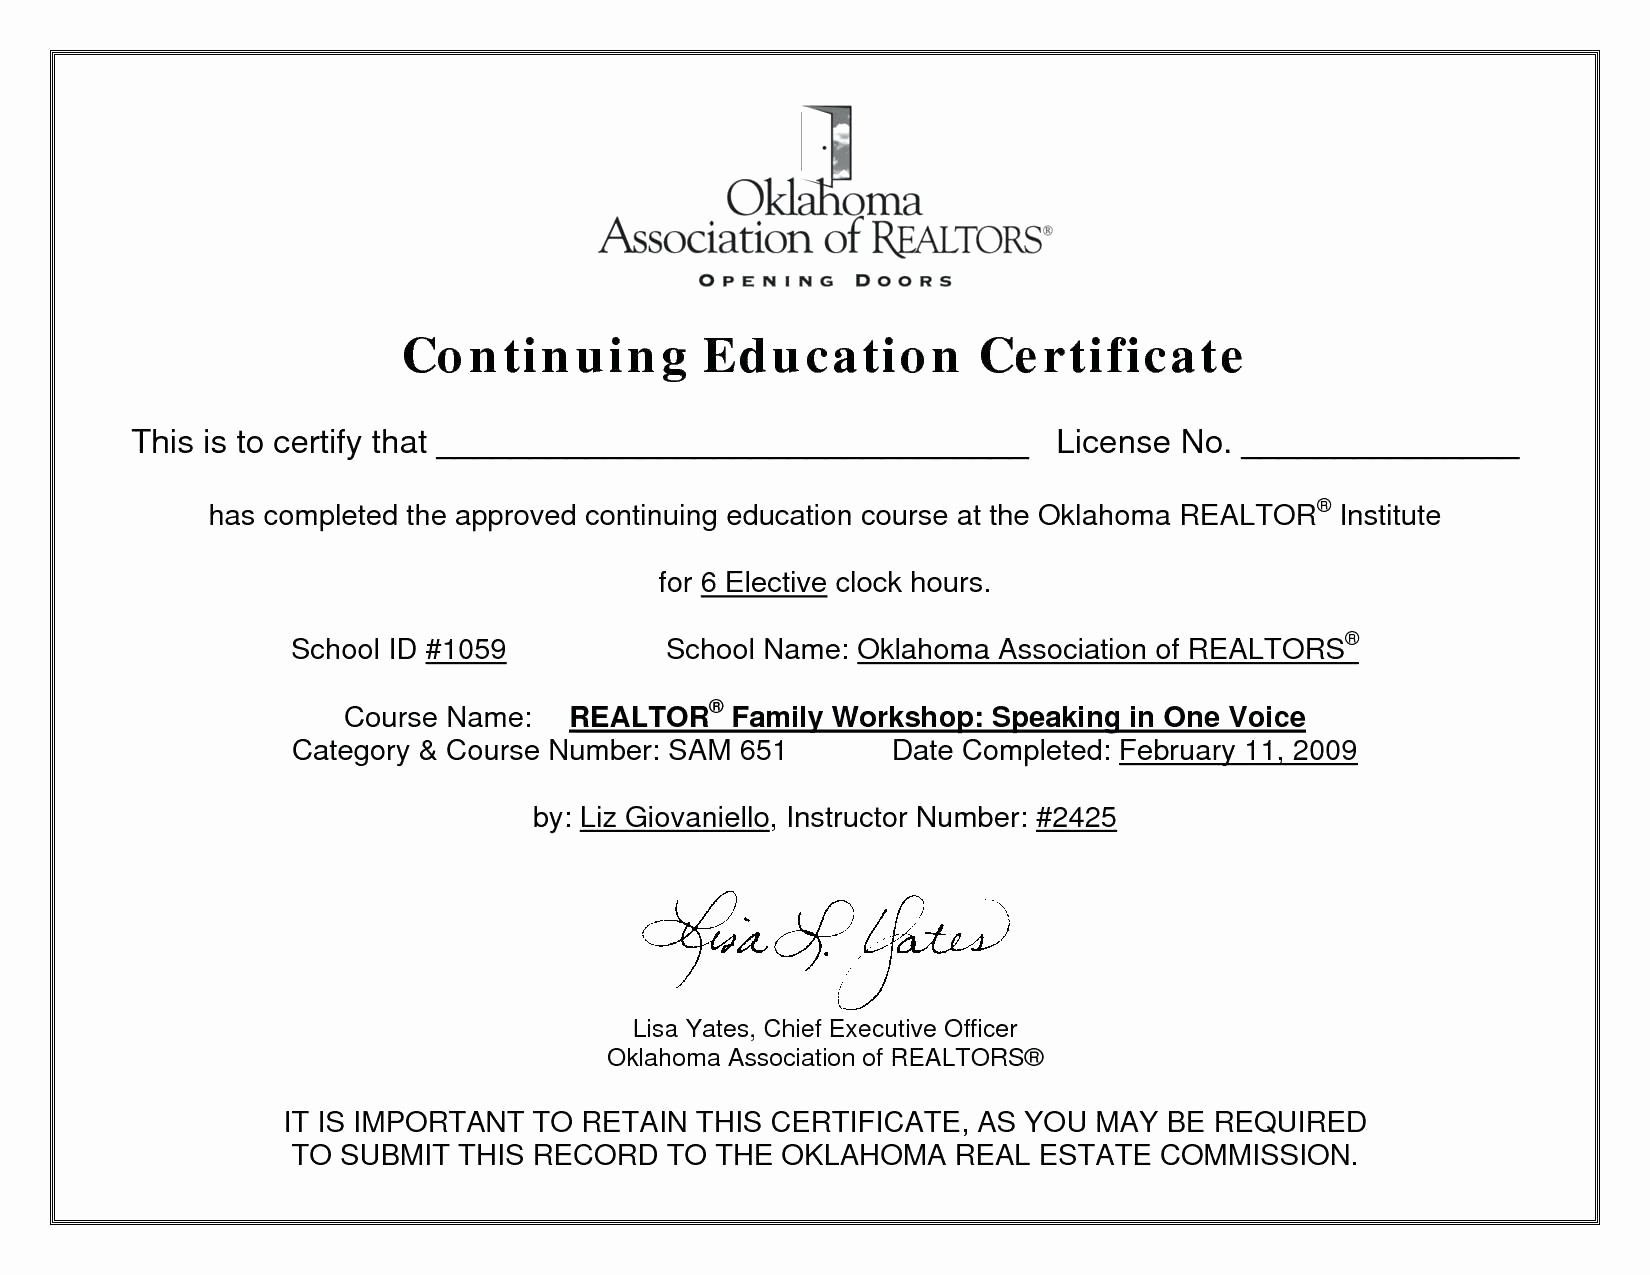 Continuing Education Certificate Template Free Awesome Ceu Certificate Template